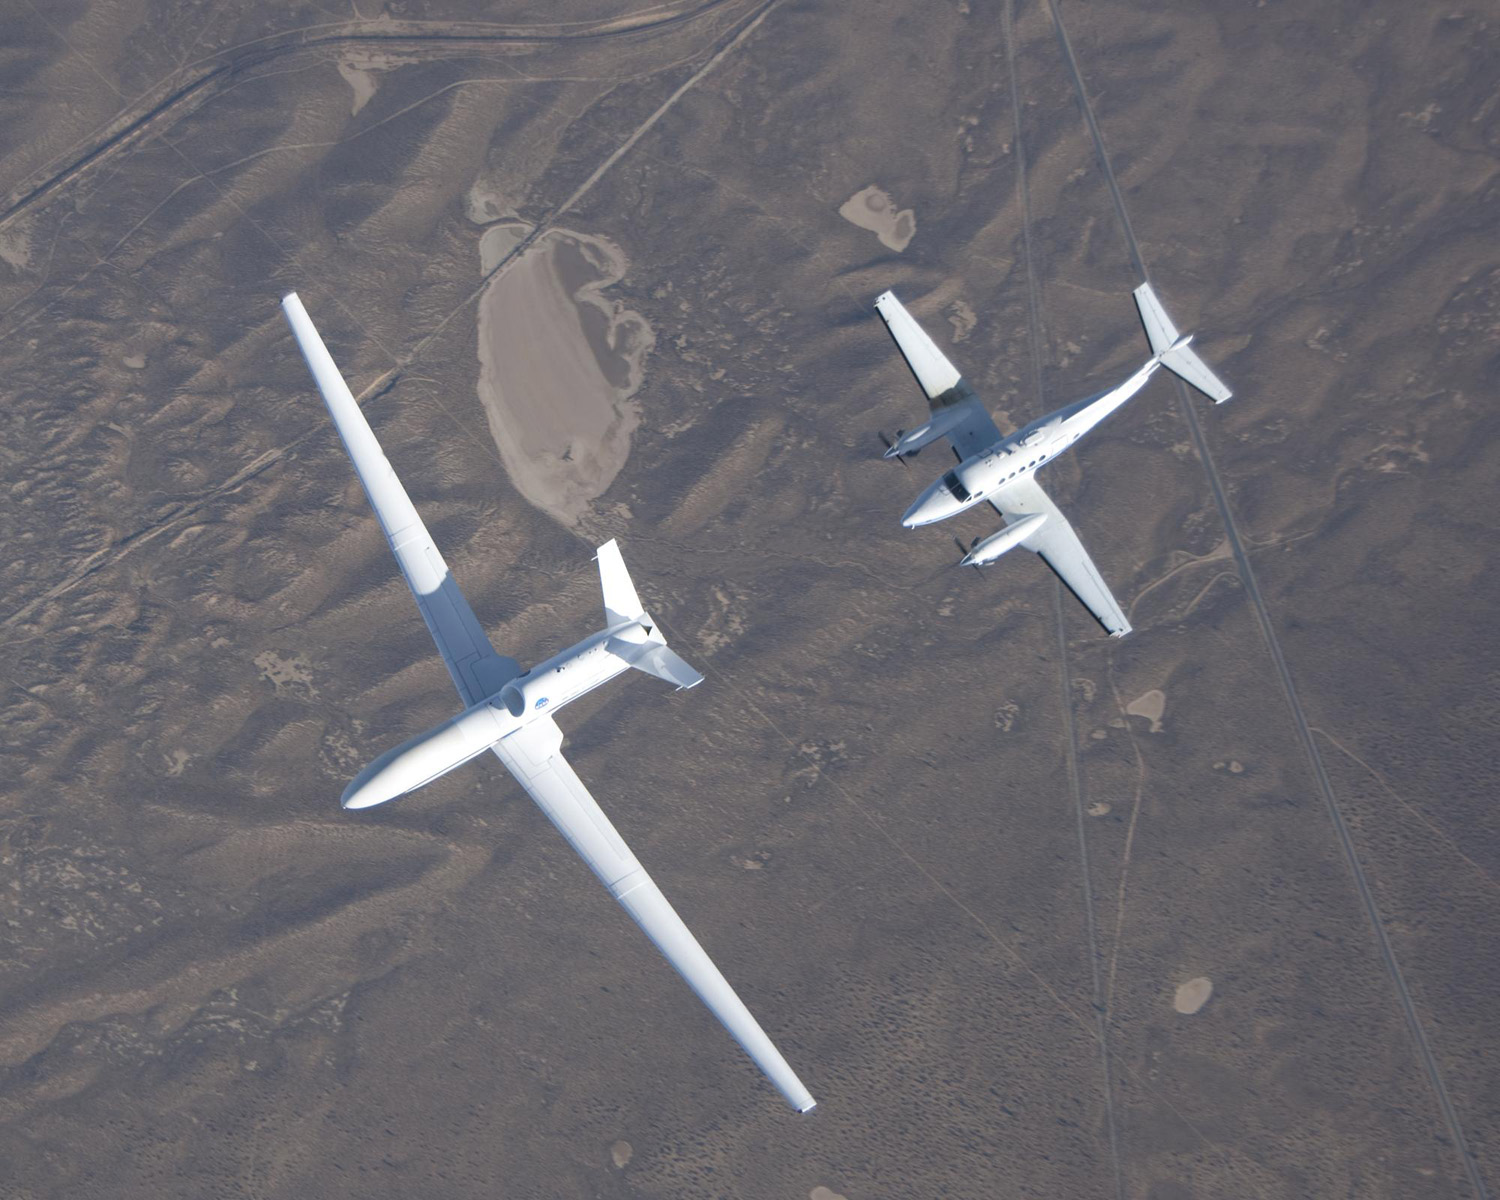 Overhead view of two planes flying; front plane has large wingspan, back plane is smaller with propellers